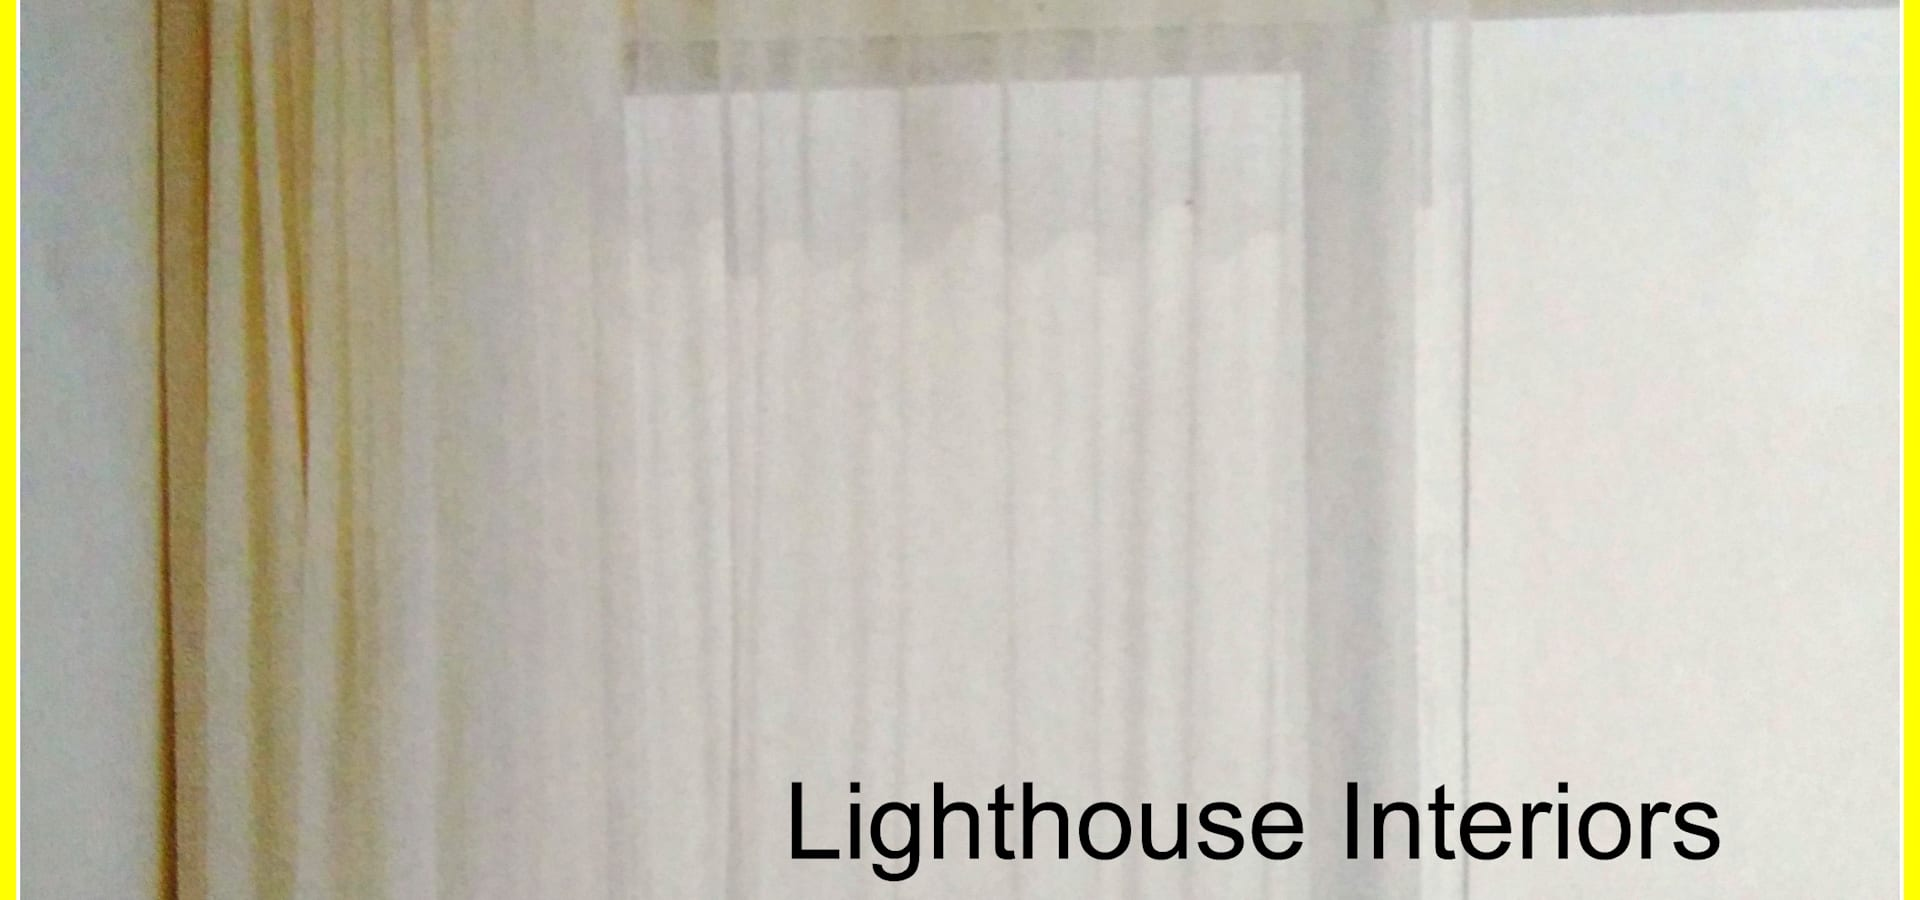 Lighthouse Interiors